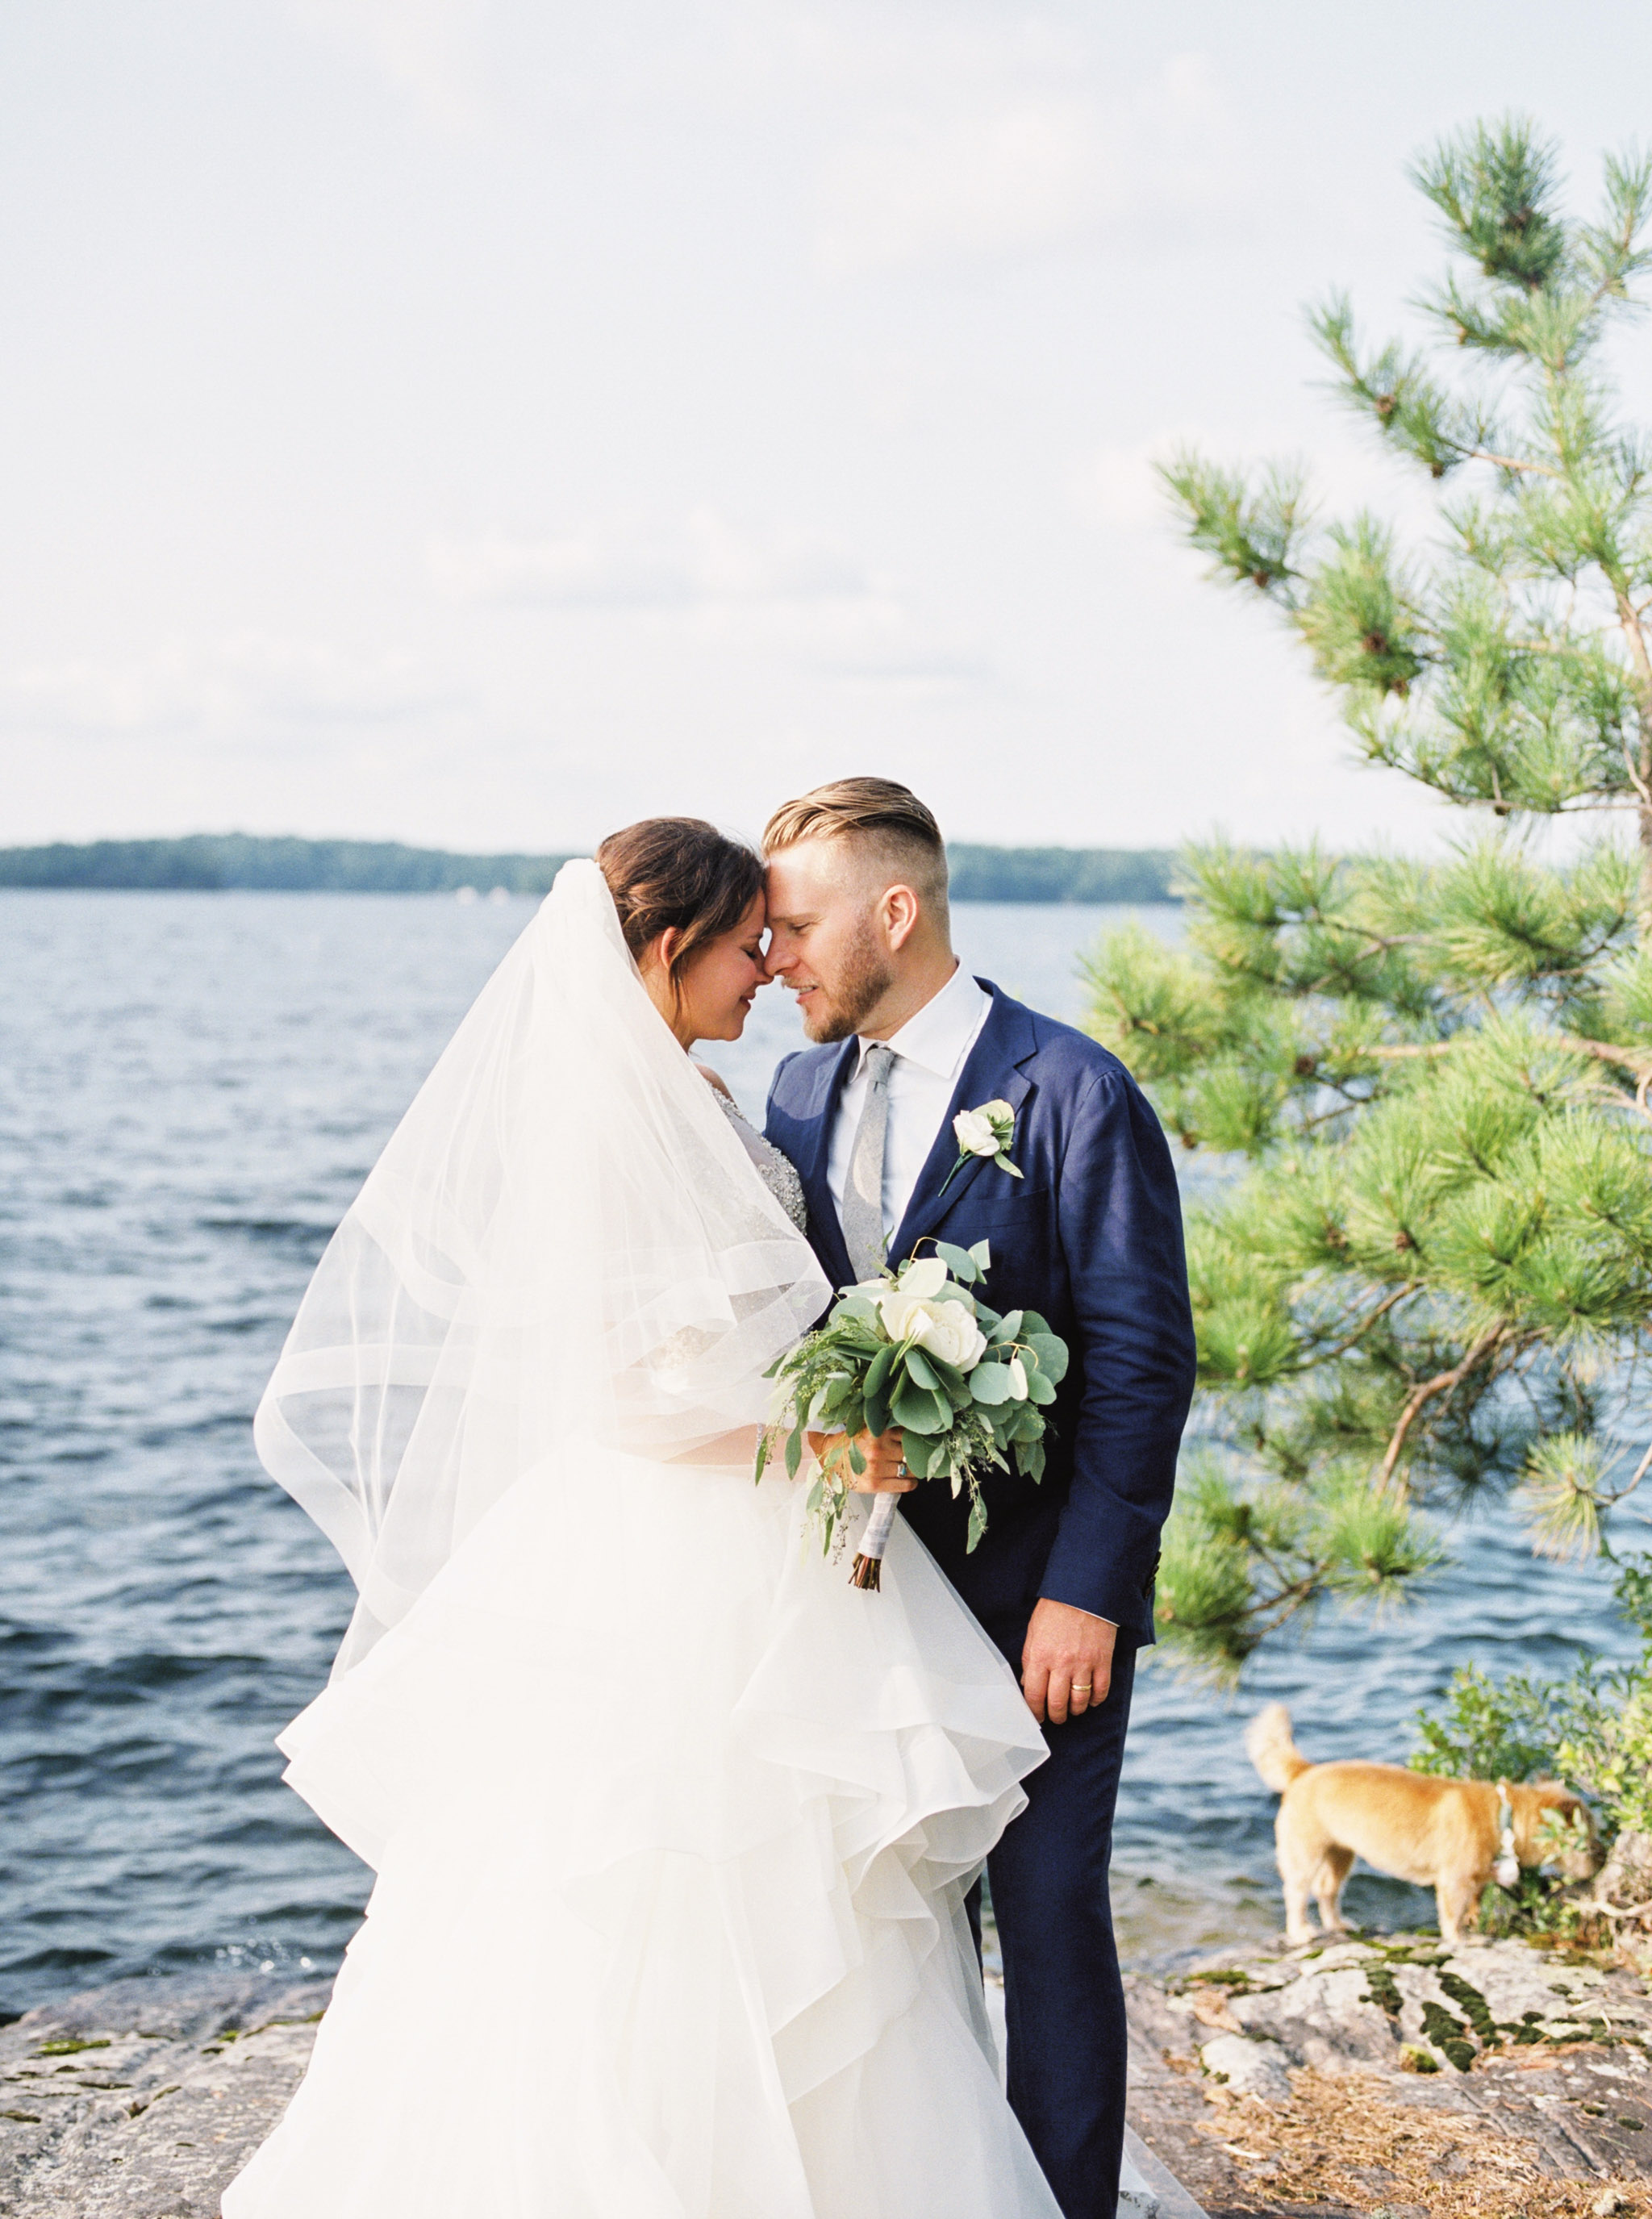 Summer weddings in Muskoka.